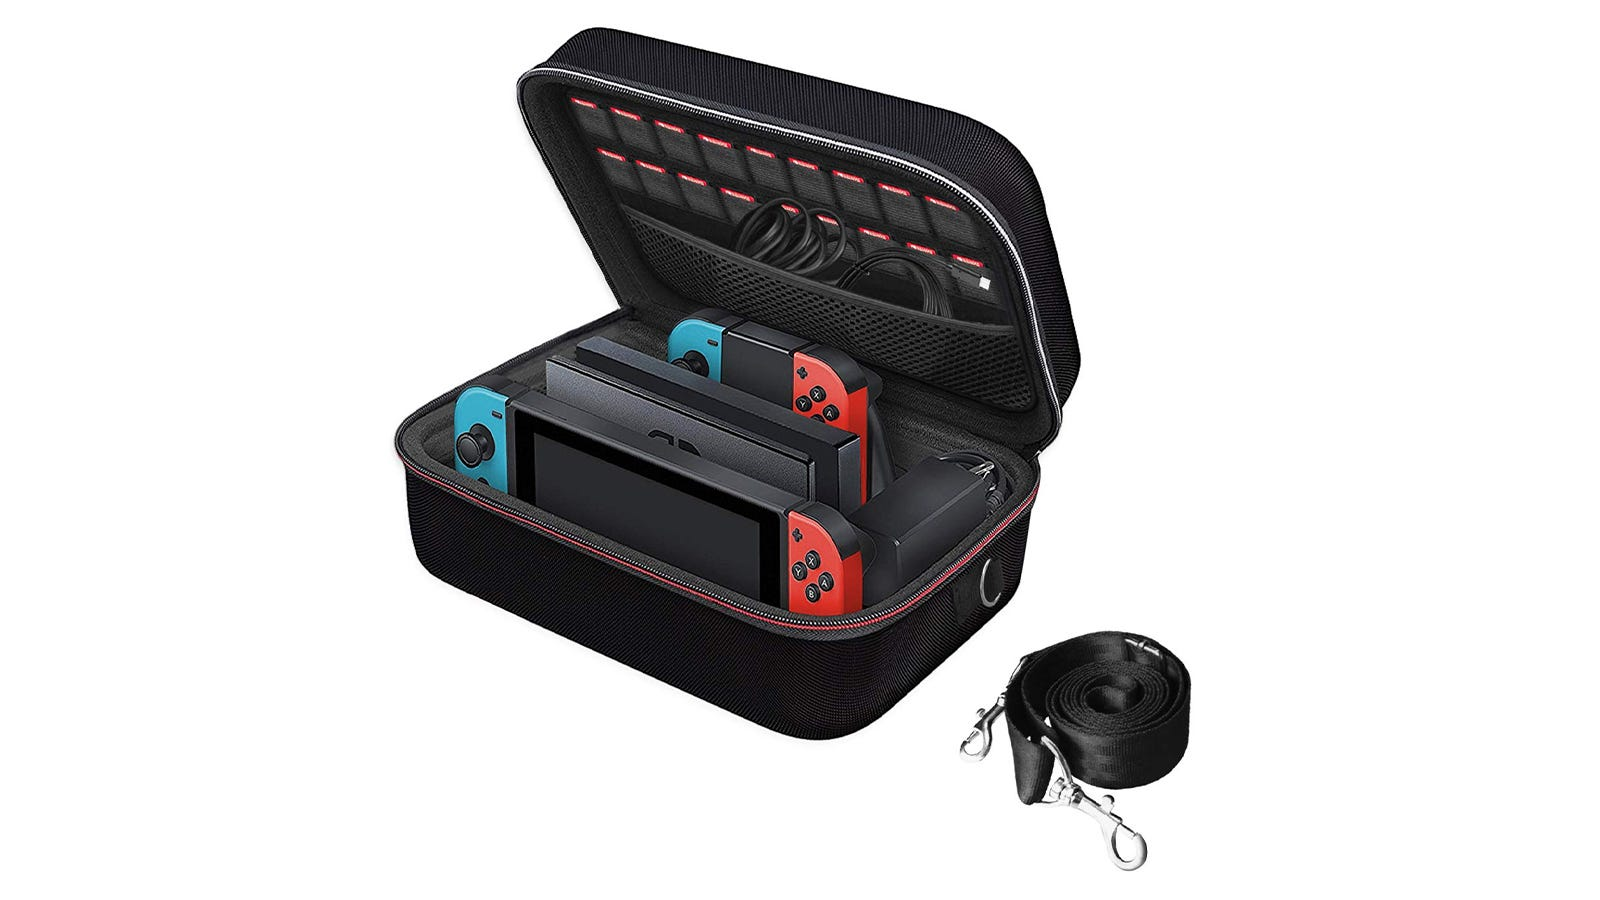 The iVoler Nintendo Switch Carrying Case with the lid open, showing several cords and controllers inside.